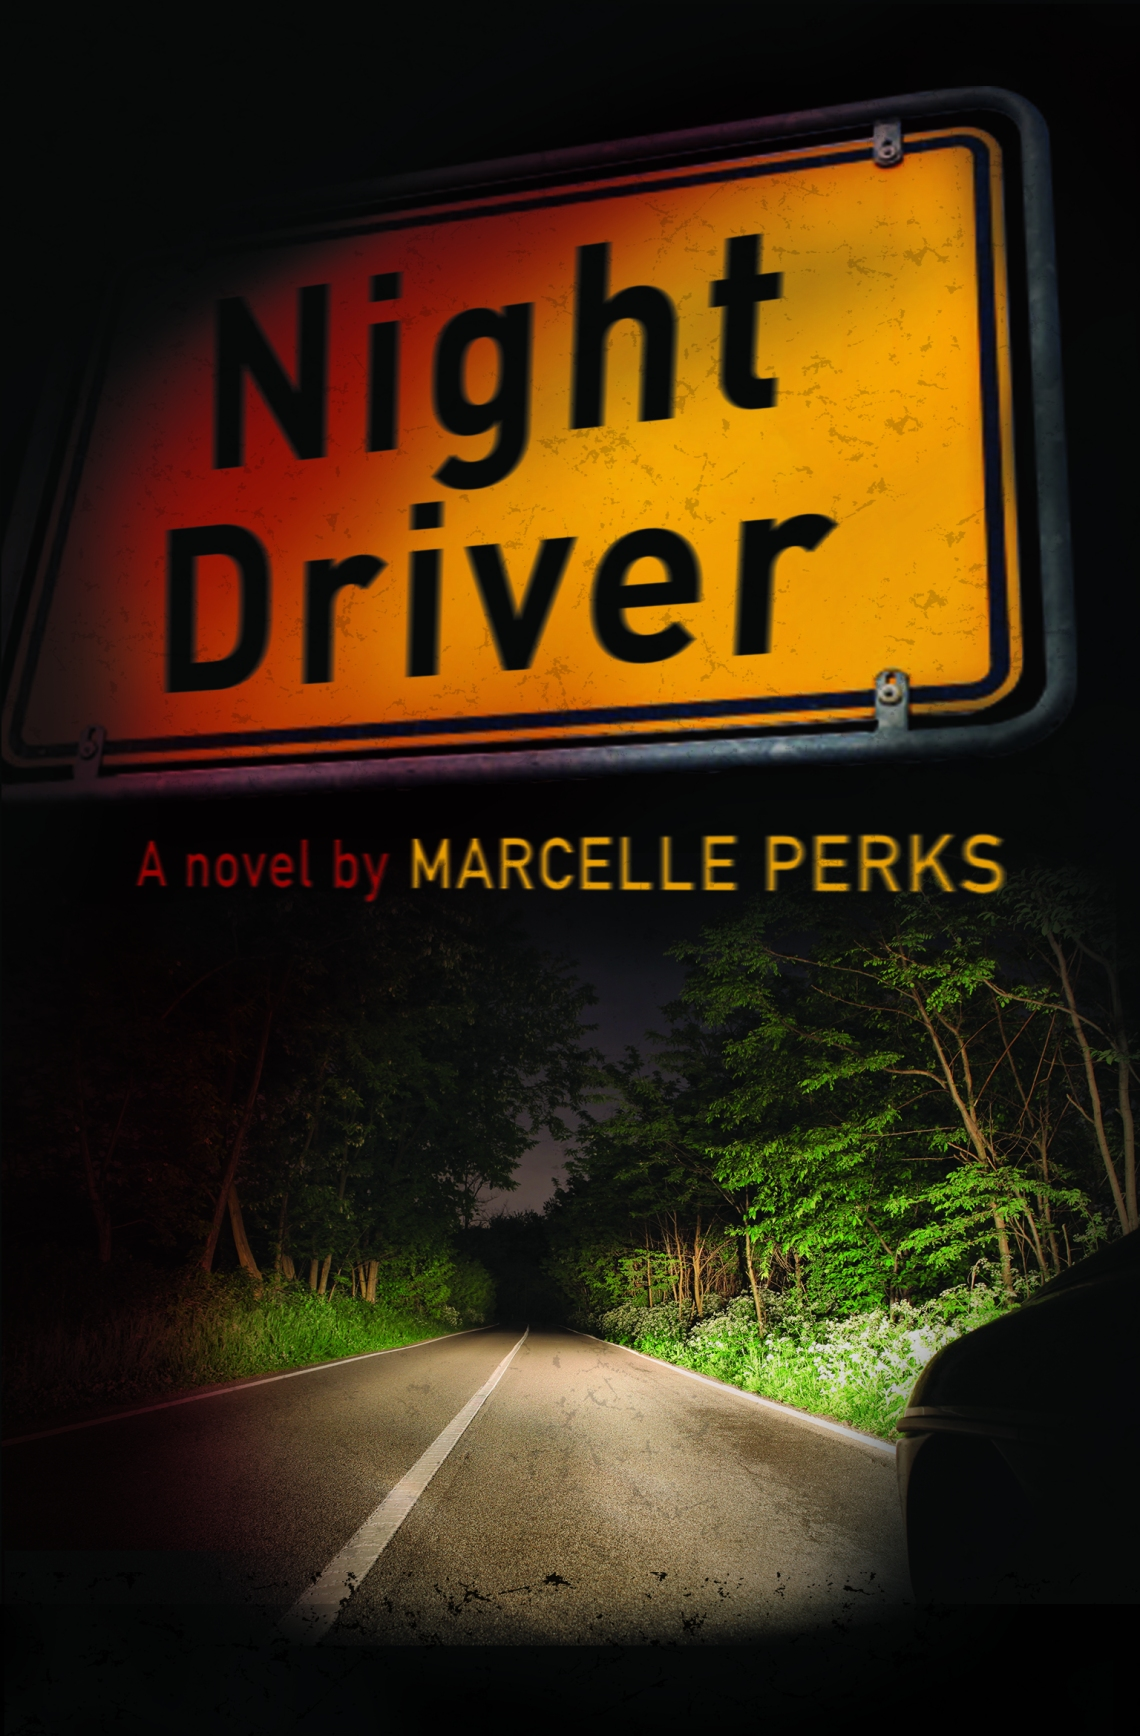 Night Driver by Marcelle Perks